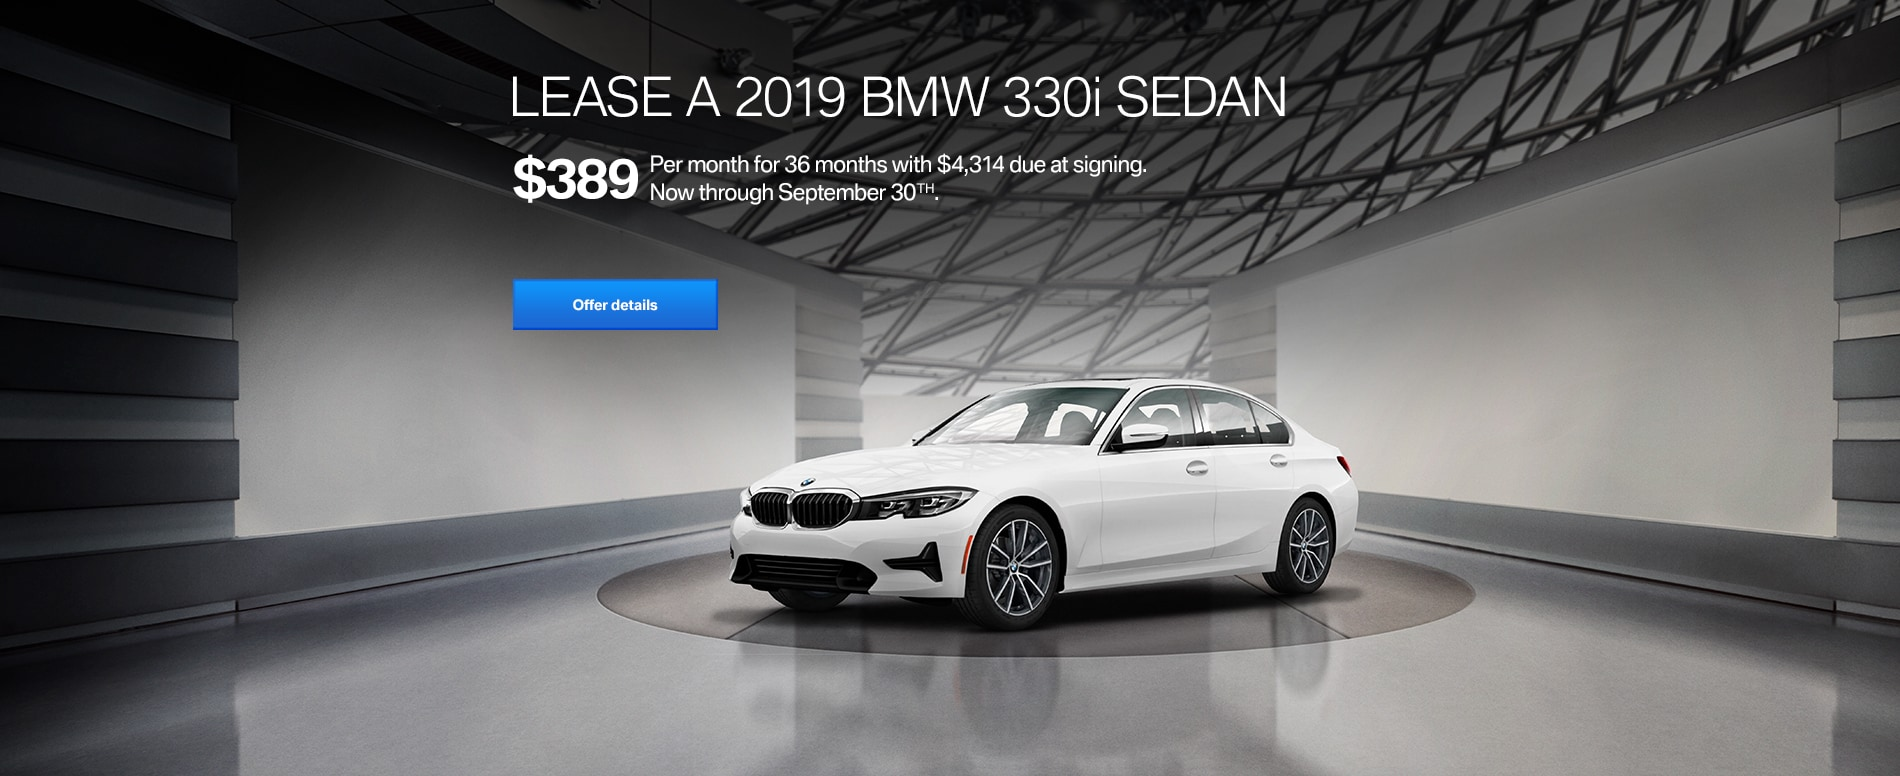 BMW of Monrovia: BMW Dealer near Los Angeles & Pasadena